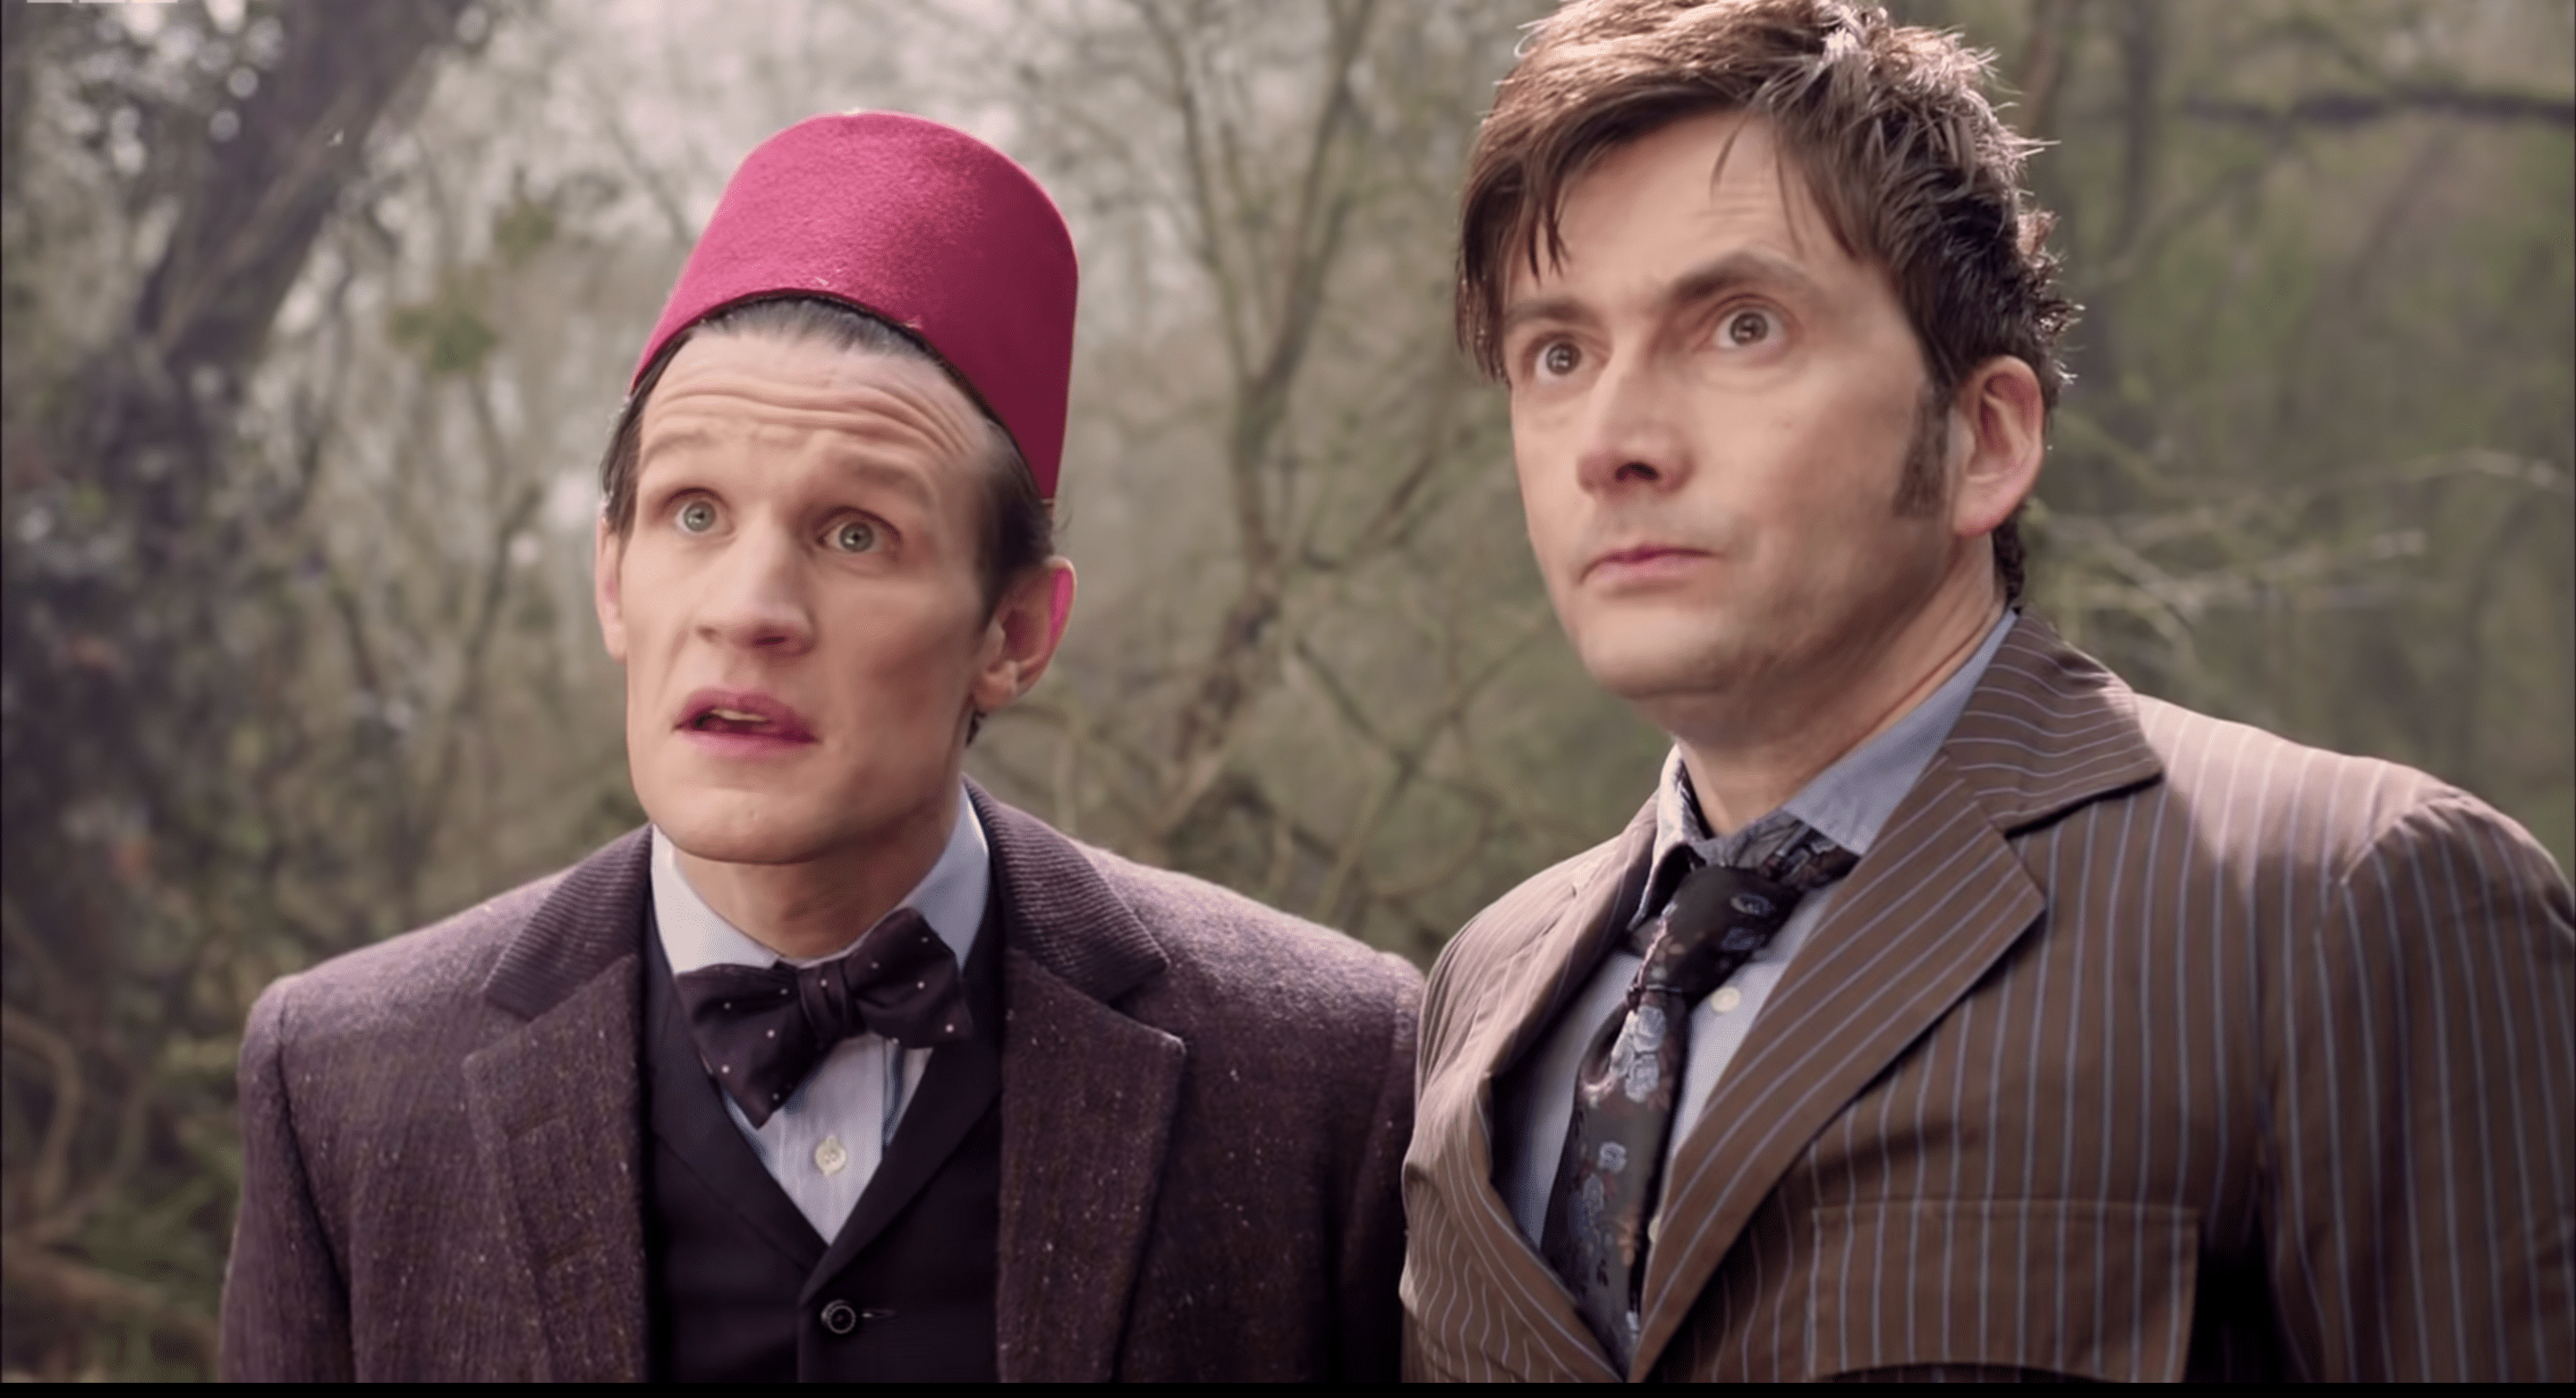 The Day of the Doctor.